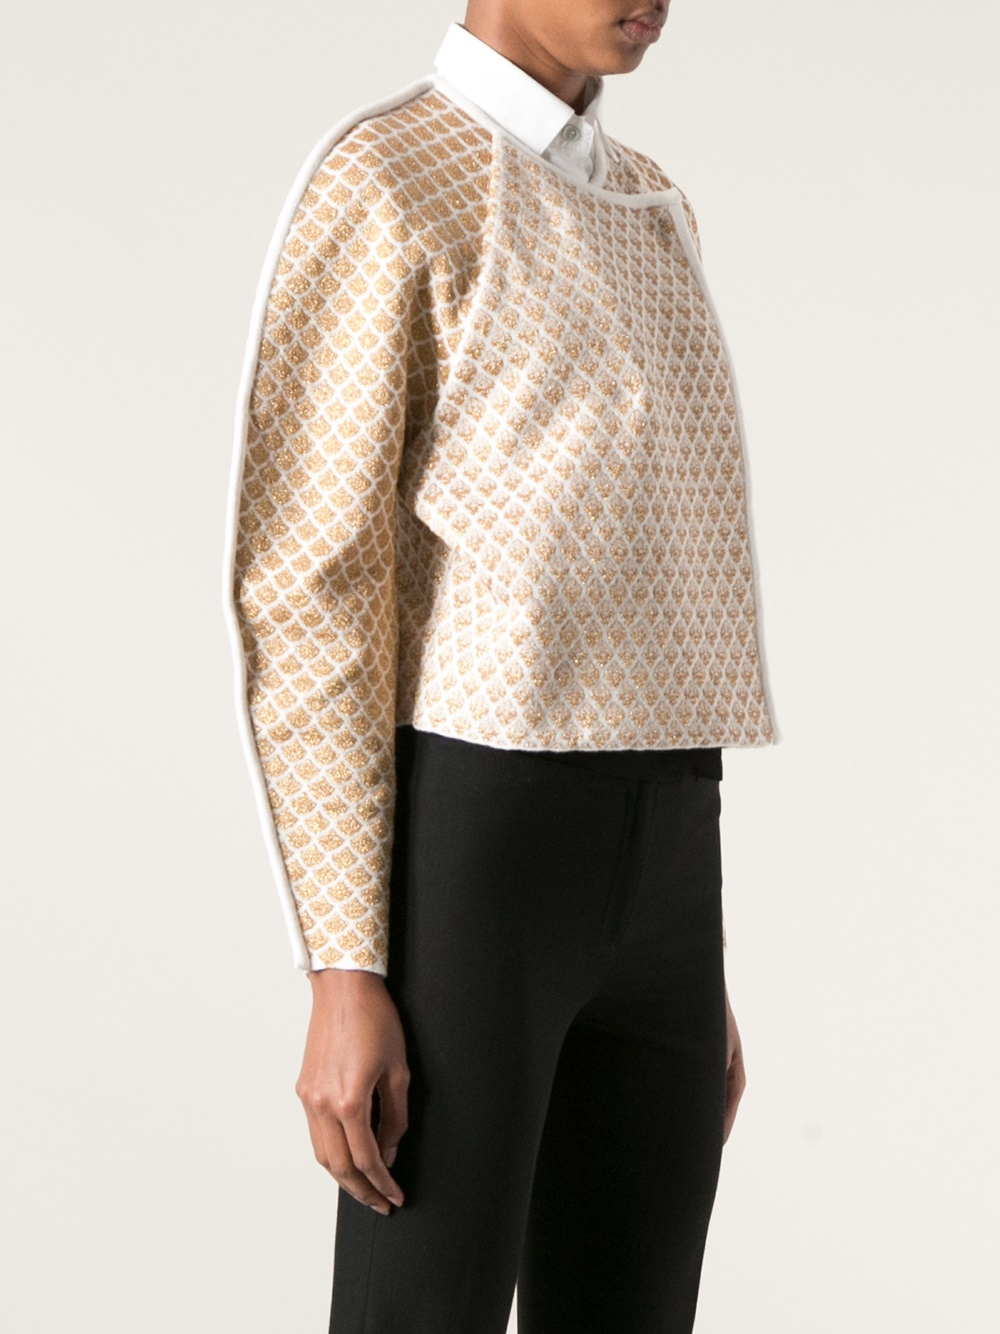 Lyst - Kenzo Jacquard Cocoon Sleeve Jacket in Natural